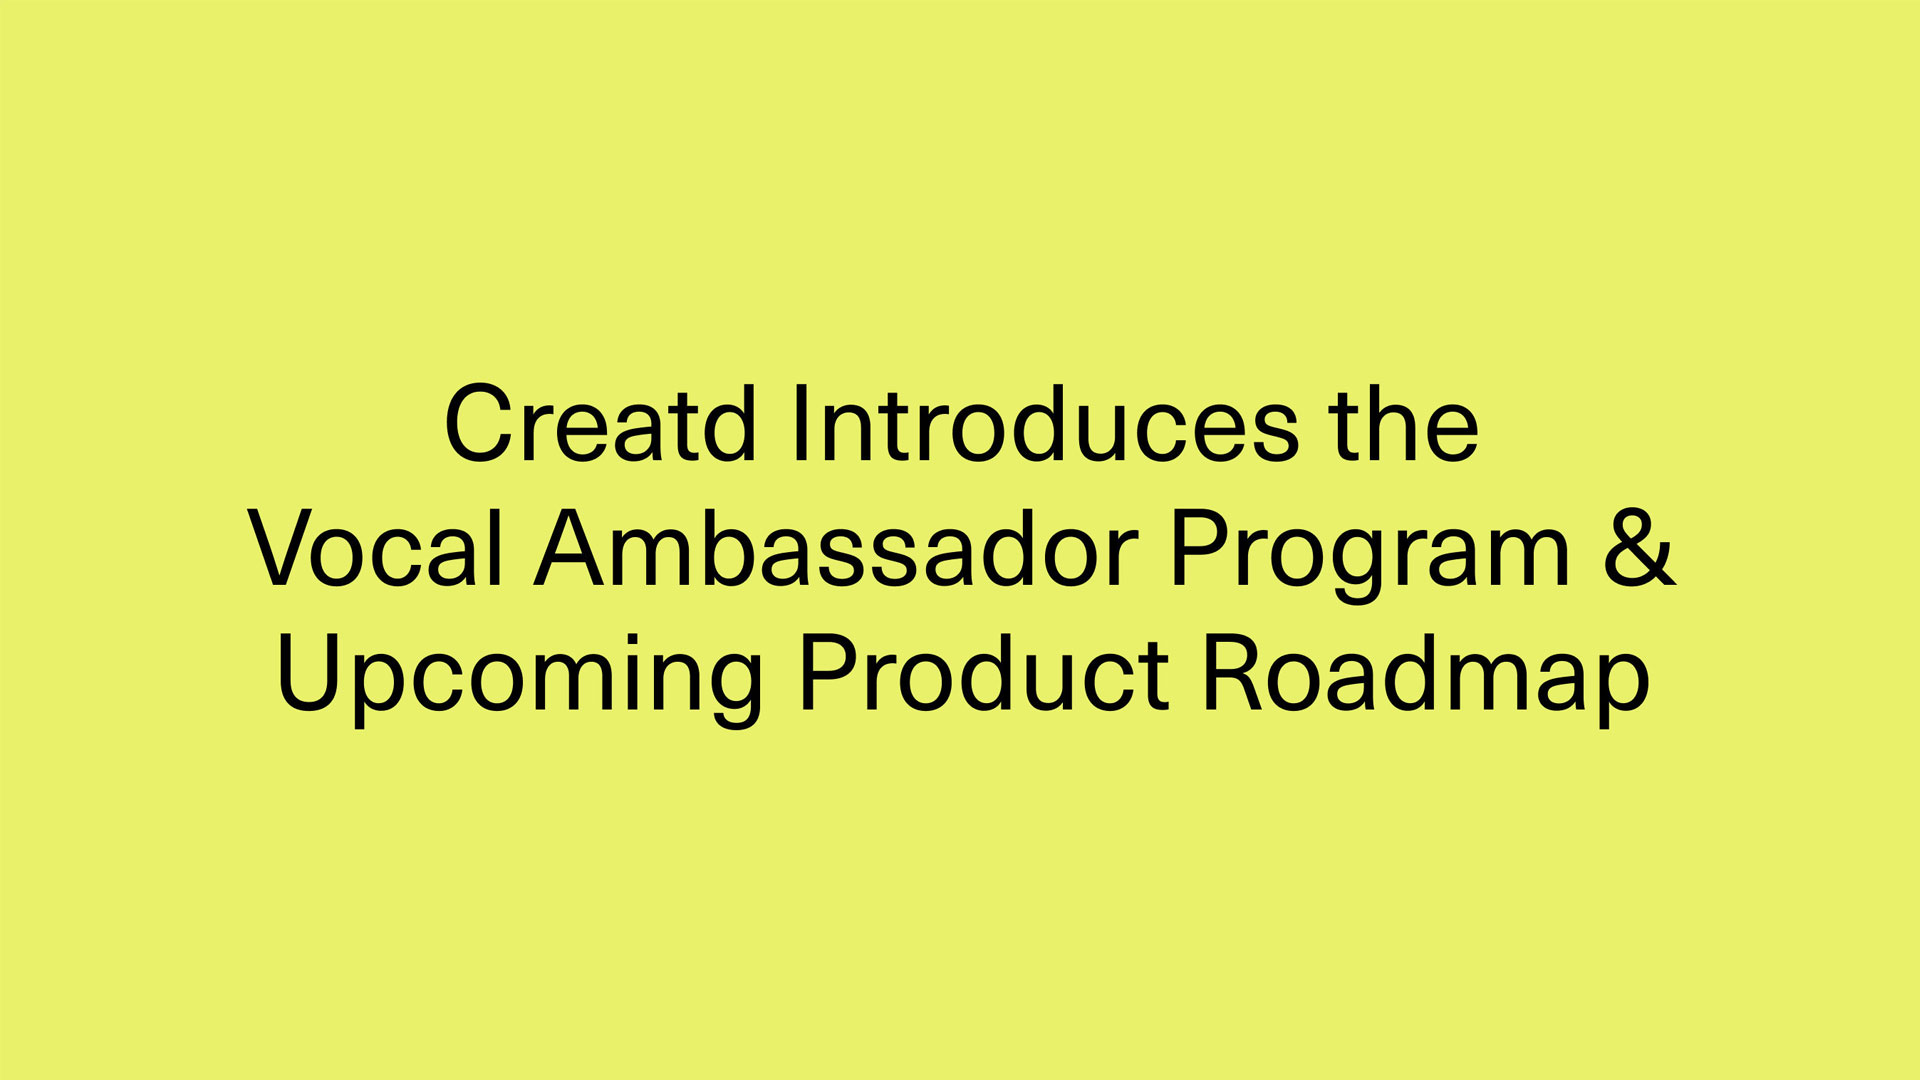 Creatd Introduces the Vocal Ambassador Program to Drive Subscription Growth, and Provides Guidance on Upcoming Product Roadmap